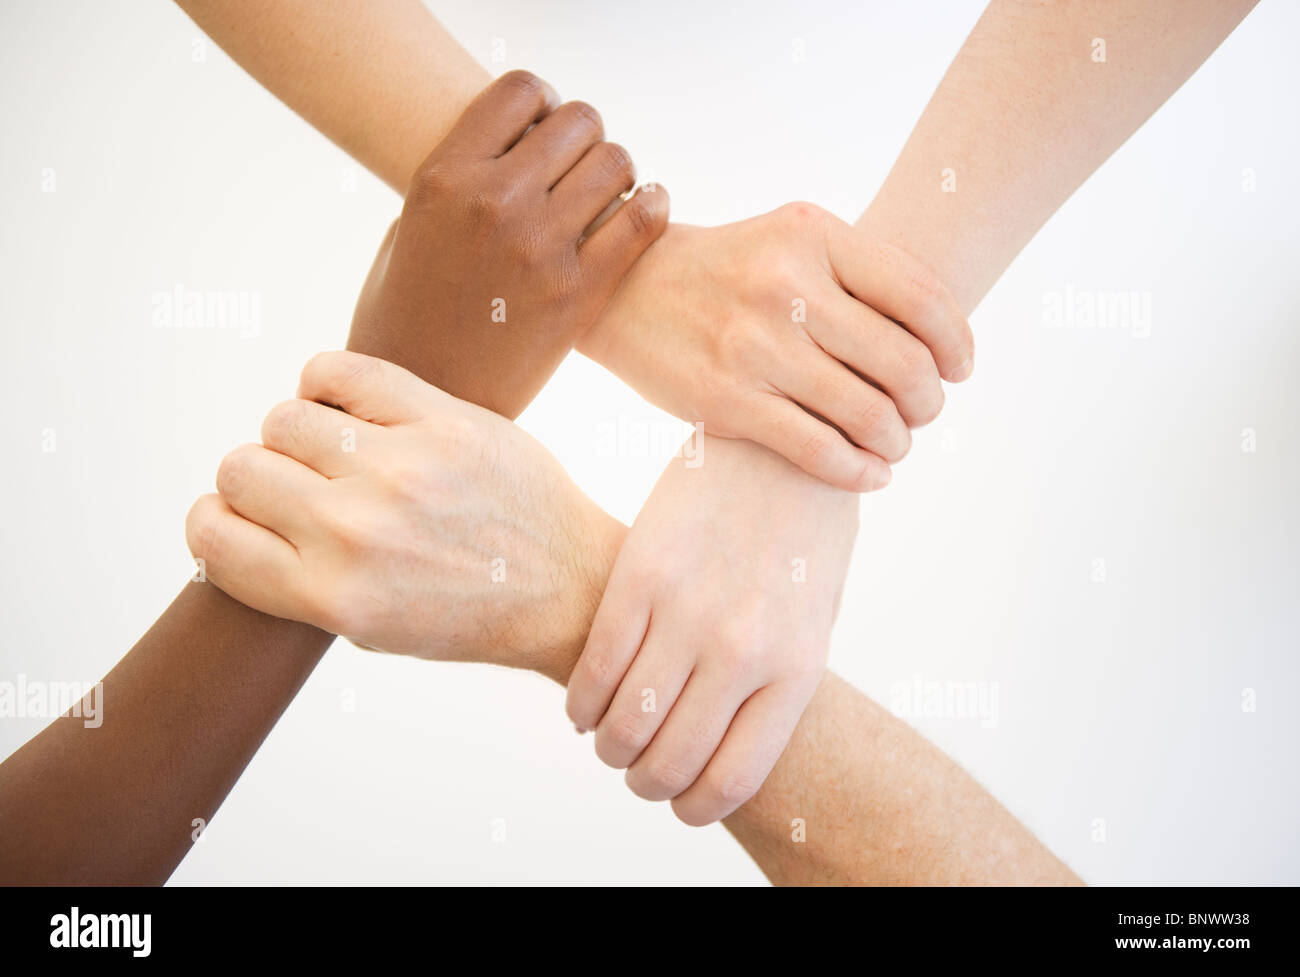 Four hands holding wrists of other people Stock Photo